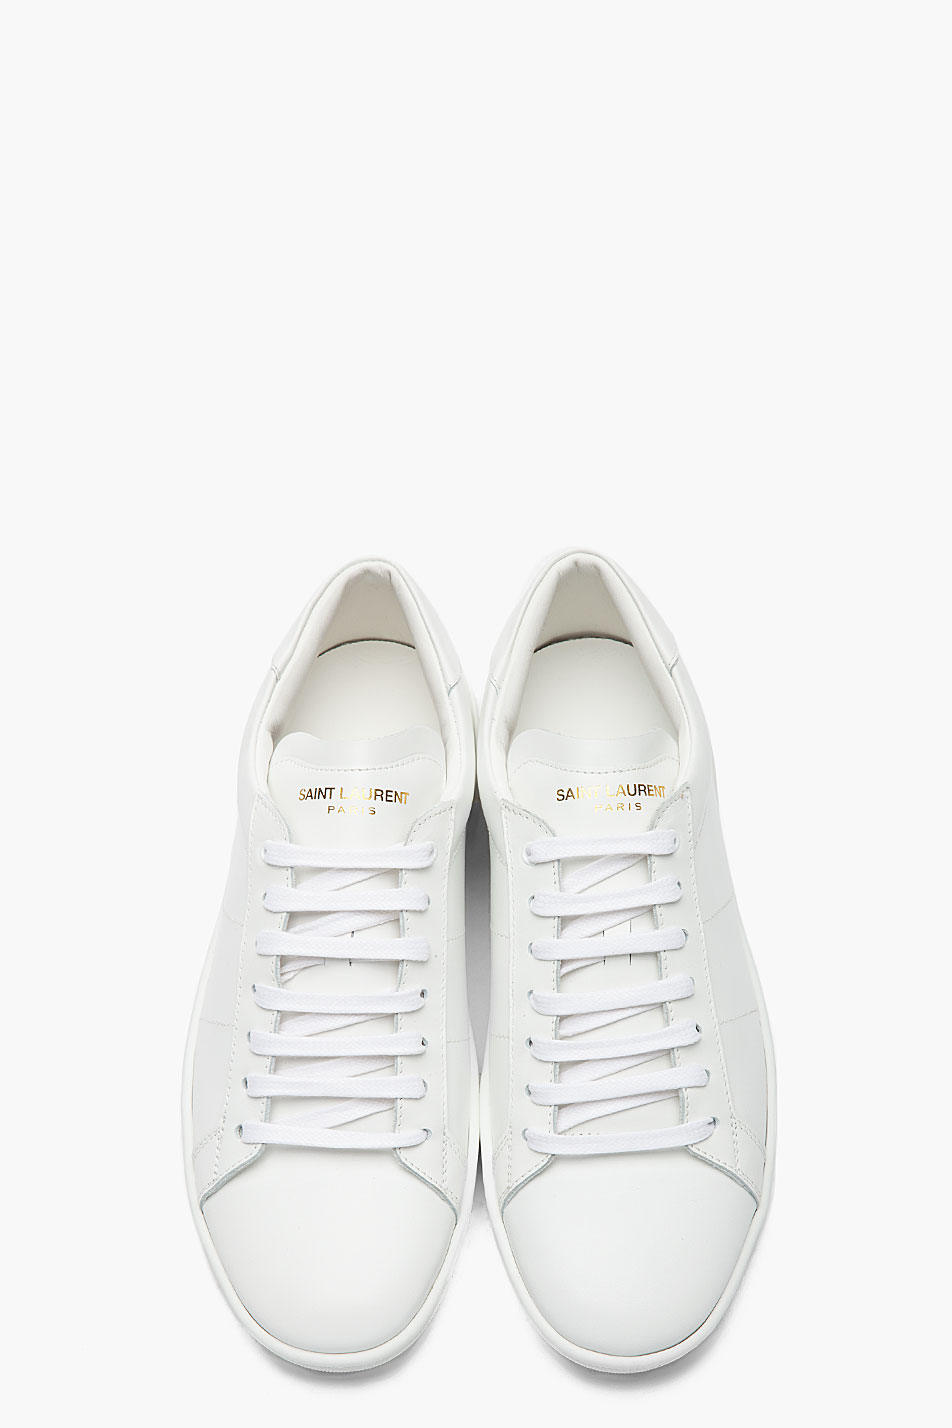 Saint Laurent White Leather Low Top Sneakers - Clean